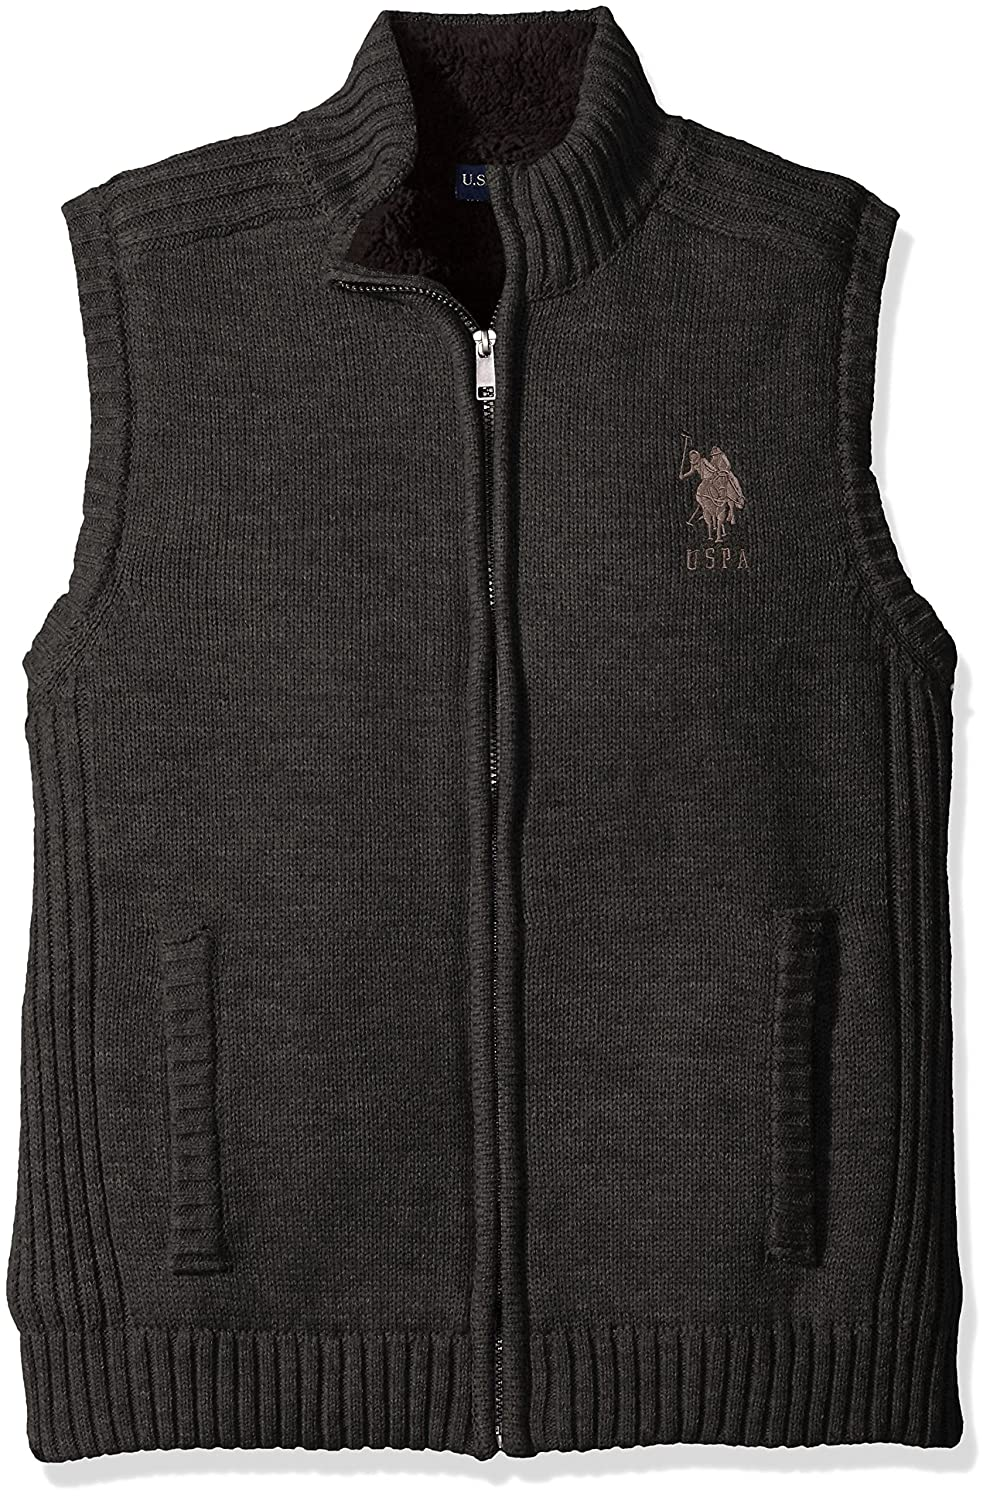 Polo Assn Sweaters License ACUV45621 Mens Lined Full Zip Vest U.S U.S Polo Assn